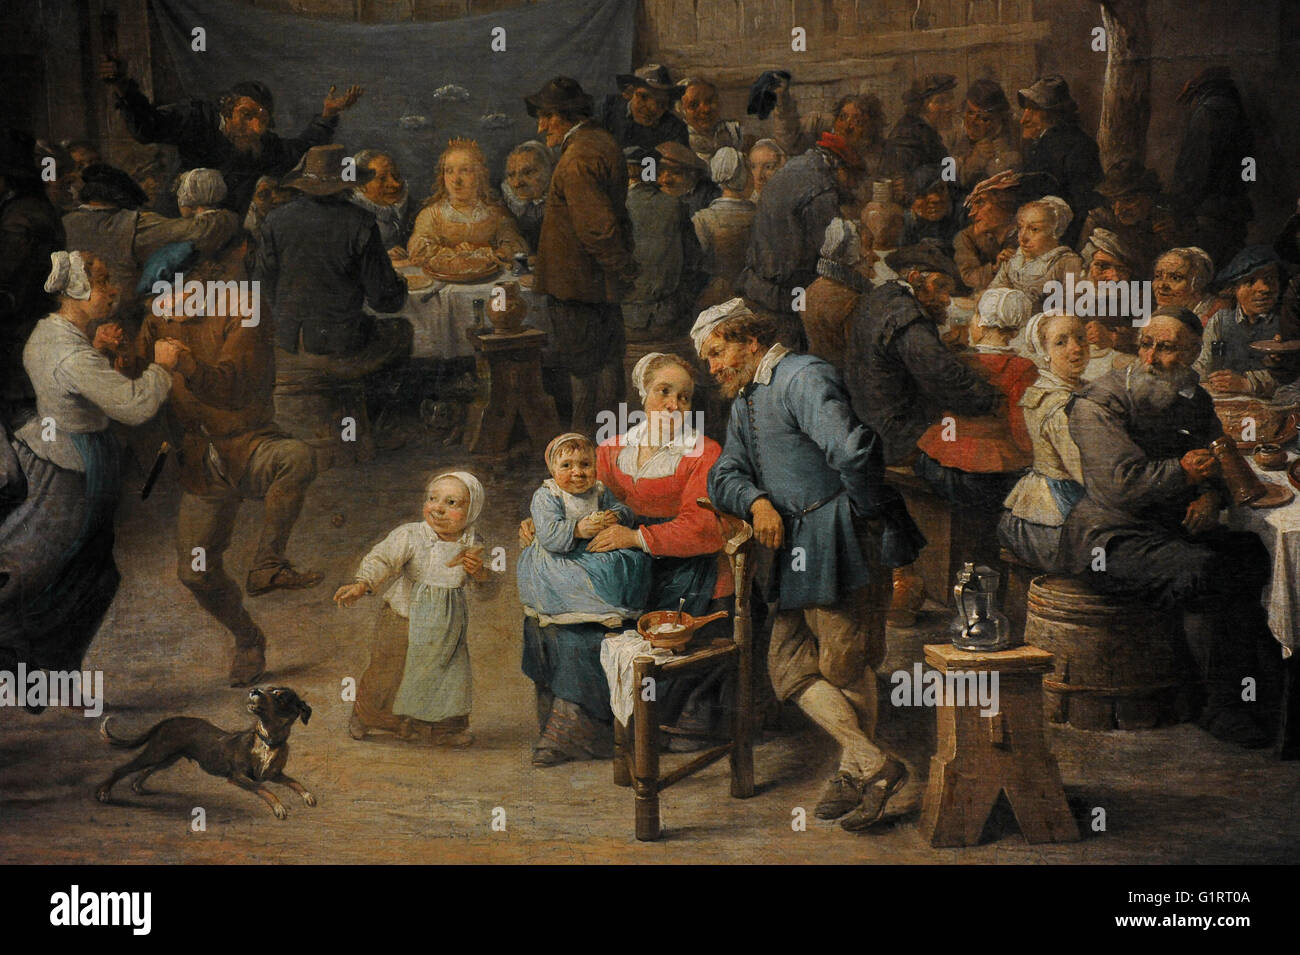 David Teniers the Younger (1610-1690). Baroque painter. Village Wedding, 1650. Detail. Oil on canvas. The State - Stock Image